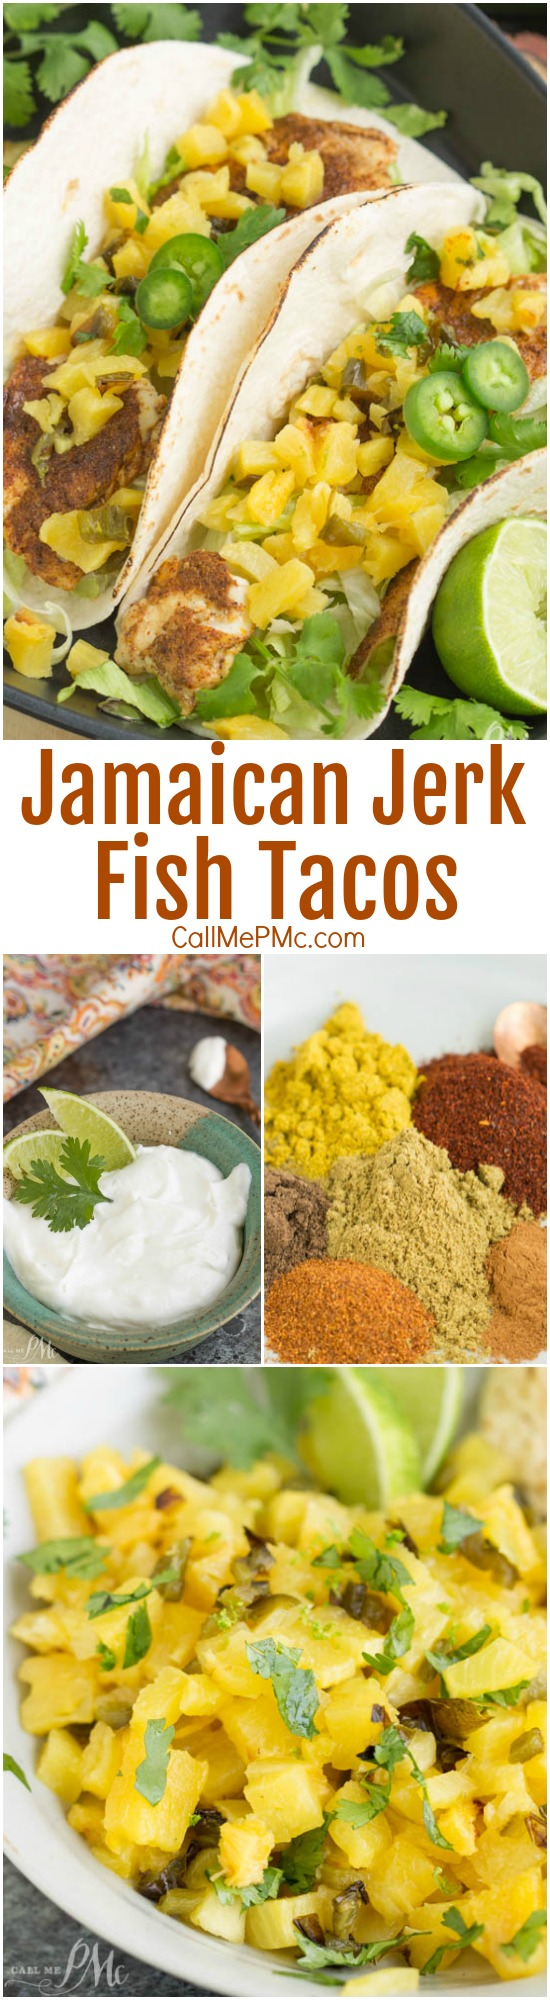 Spicy, sweet, and super flavorful, Caribbean Jamaican Jerk Fish Tacos with Lime Crema, are easy, delicious, and bursting with a complex mix of flavors.